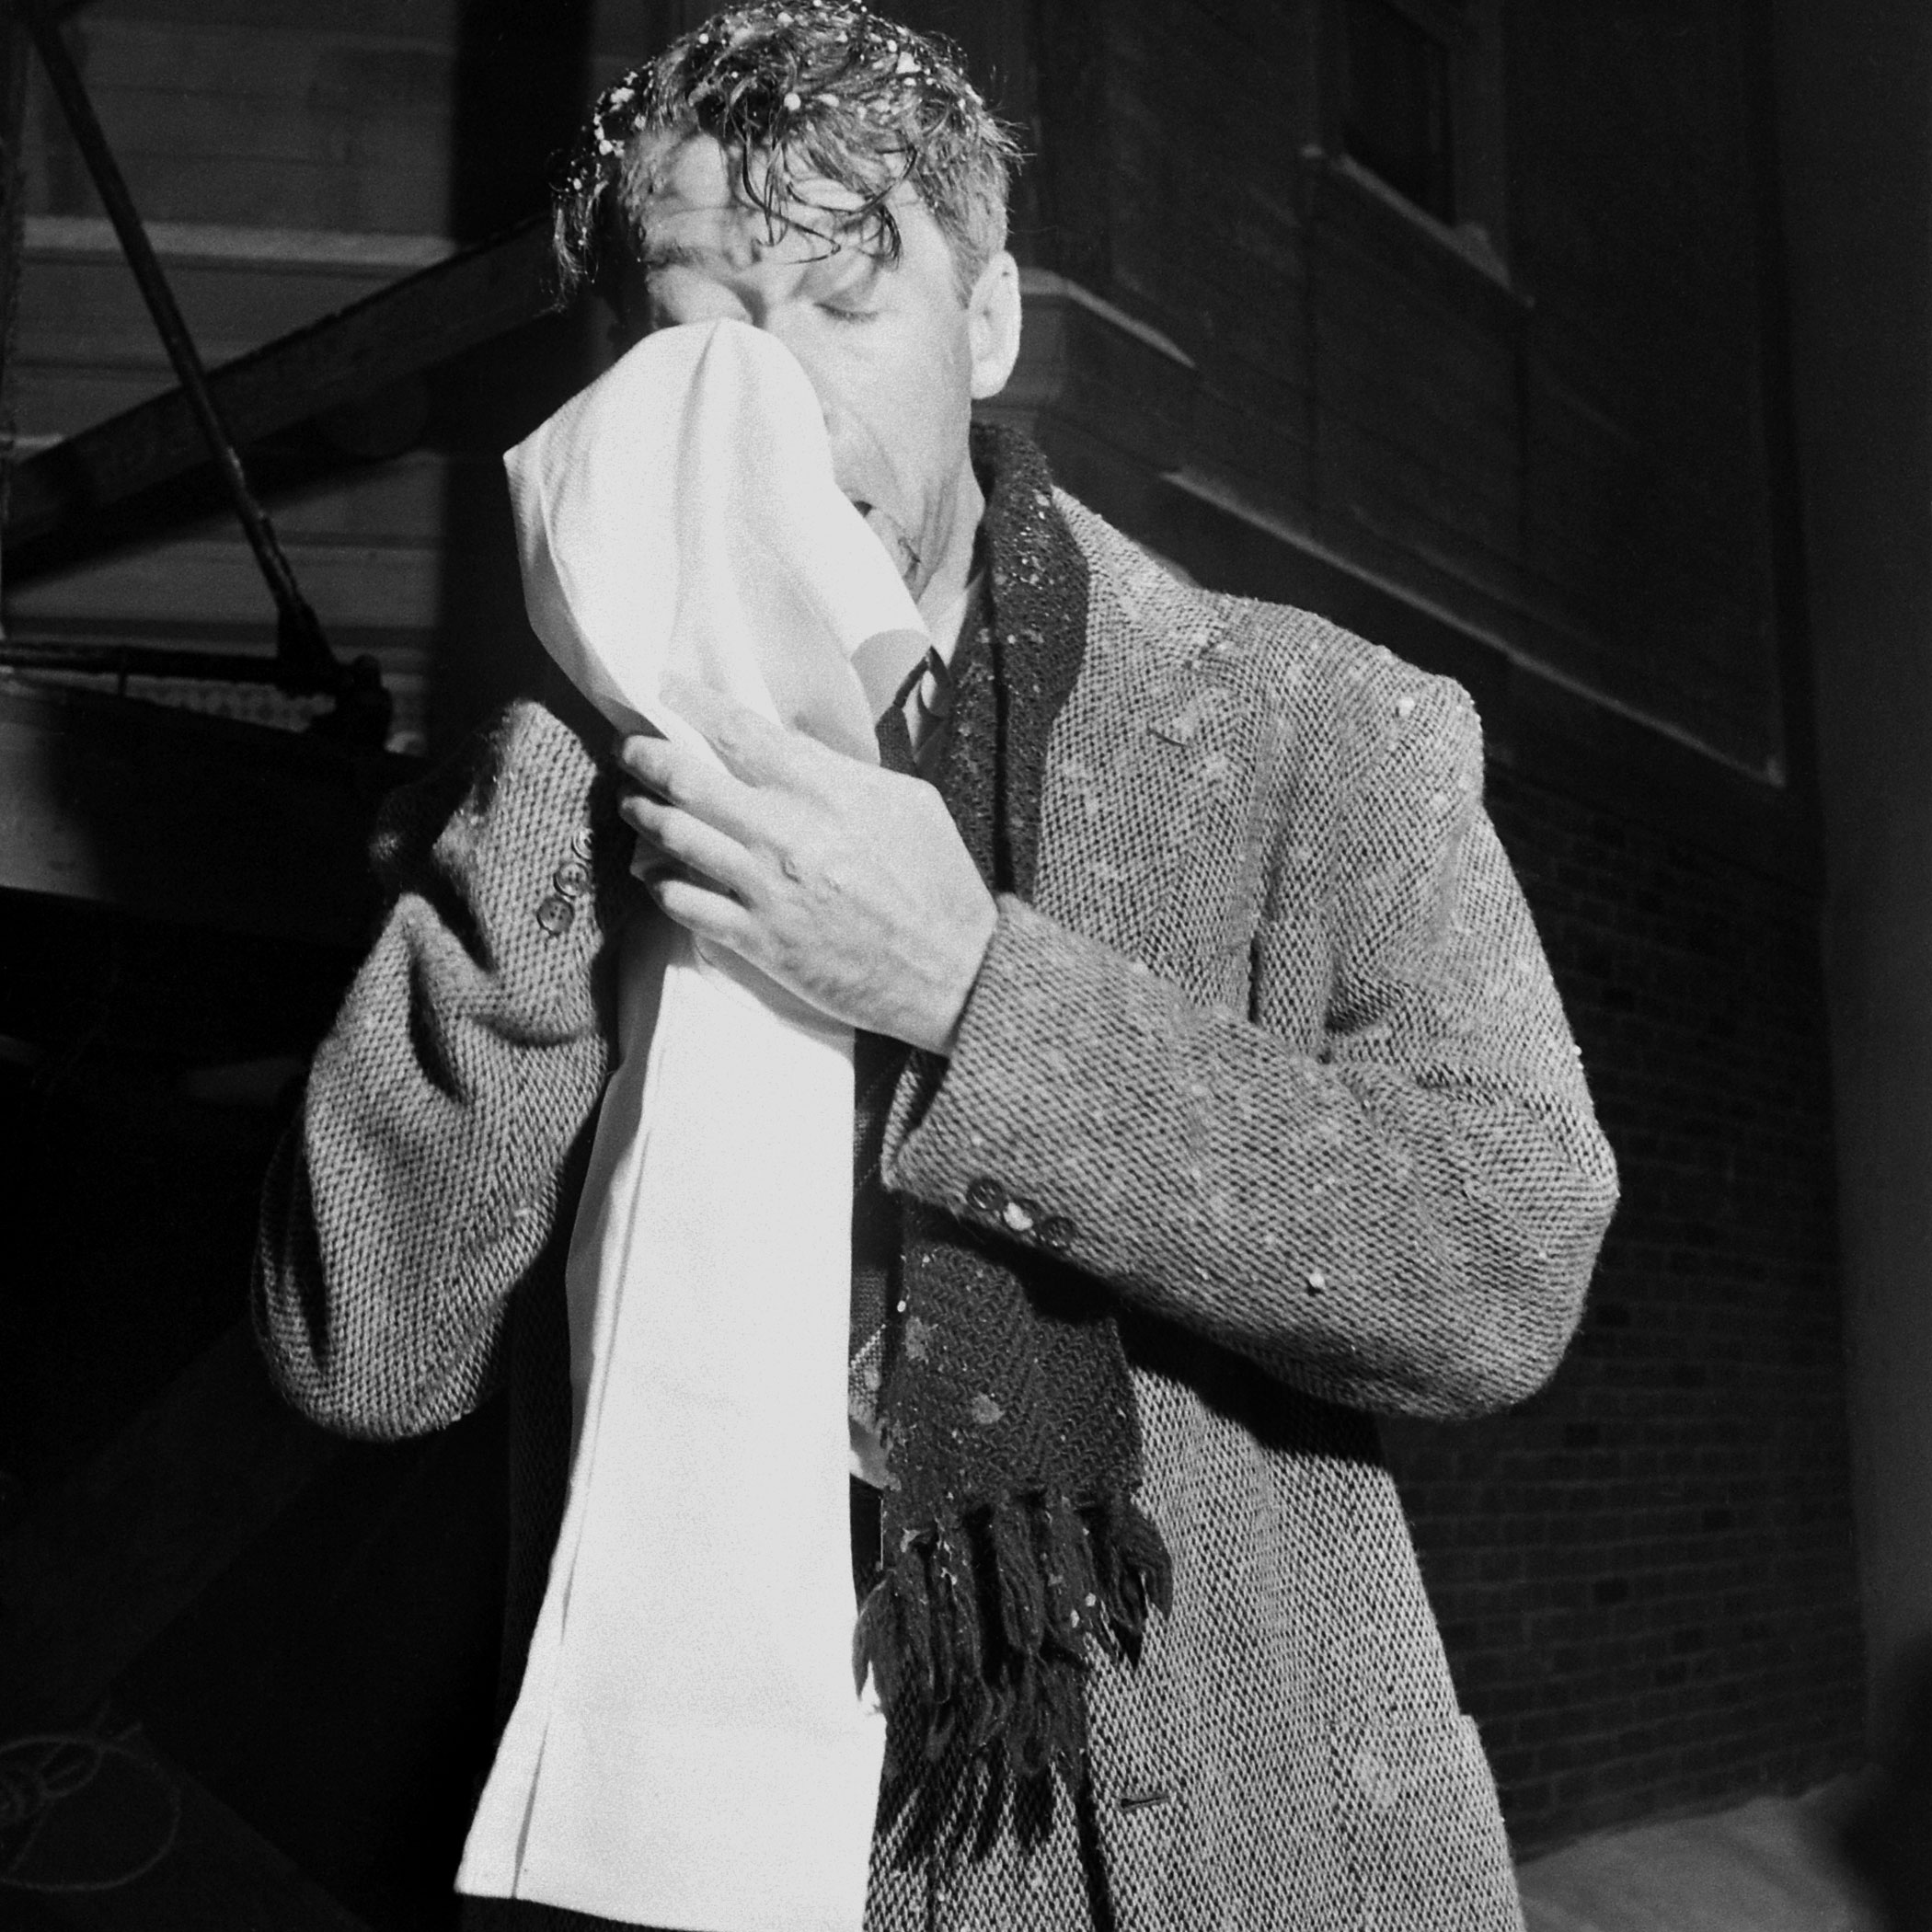 <b>Not published in LIFE.</b> Jimmy Stewart on the set of <i>It's a Wonderful Life</i>.